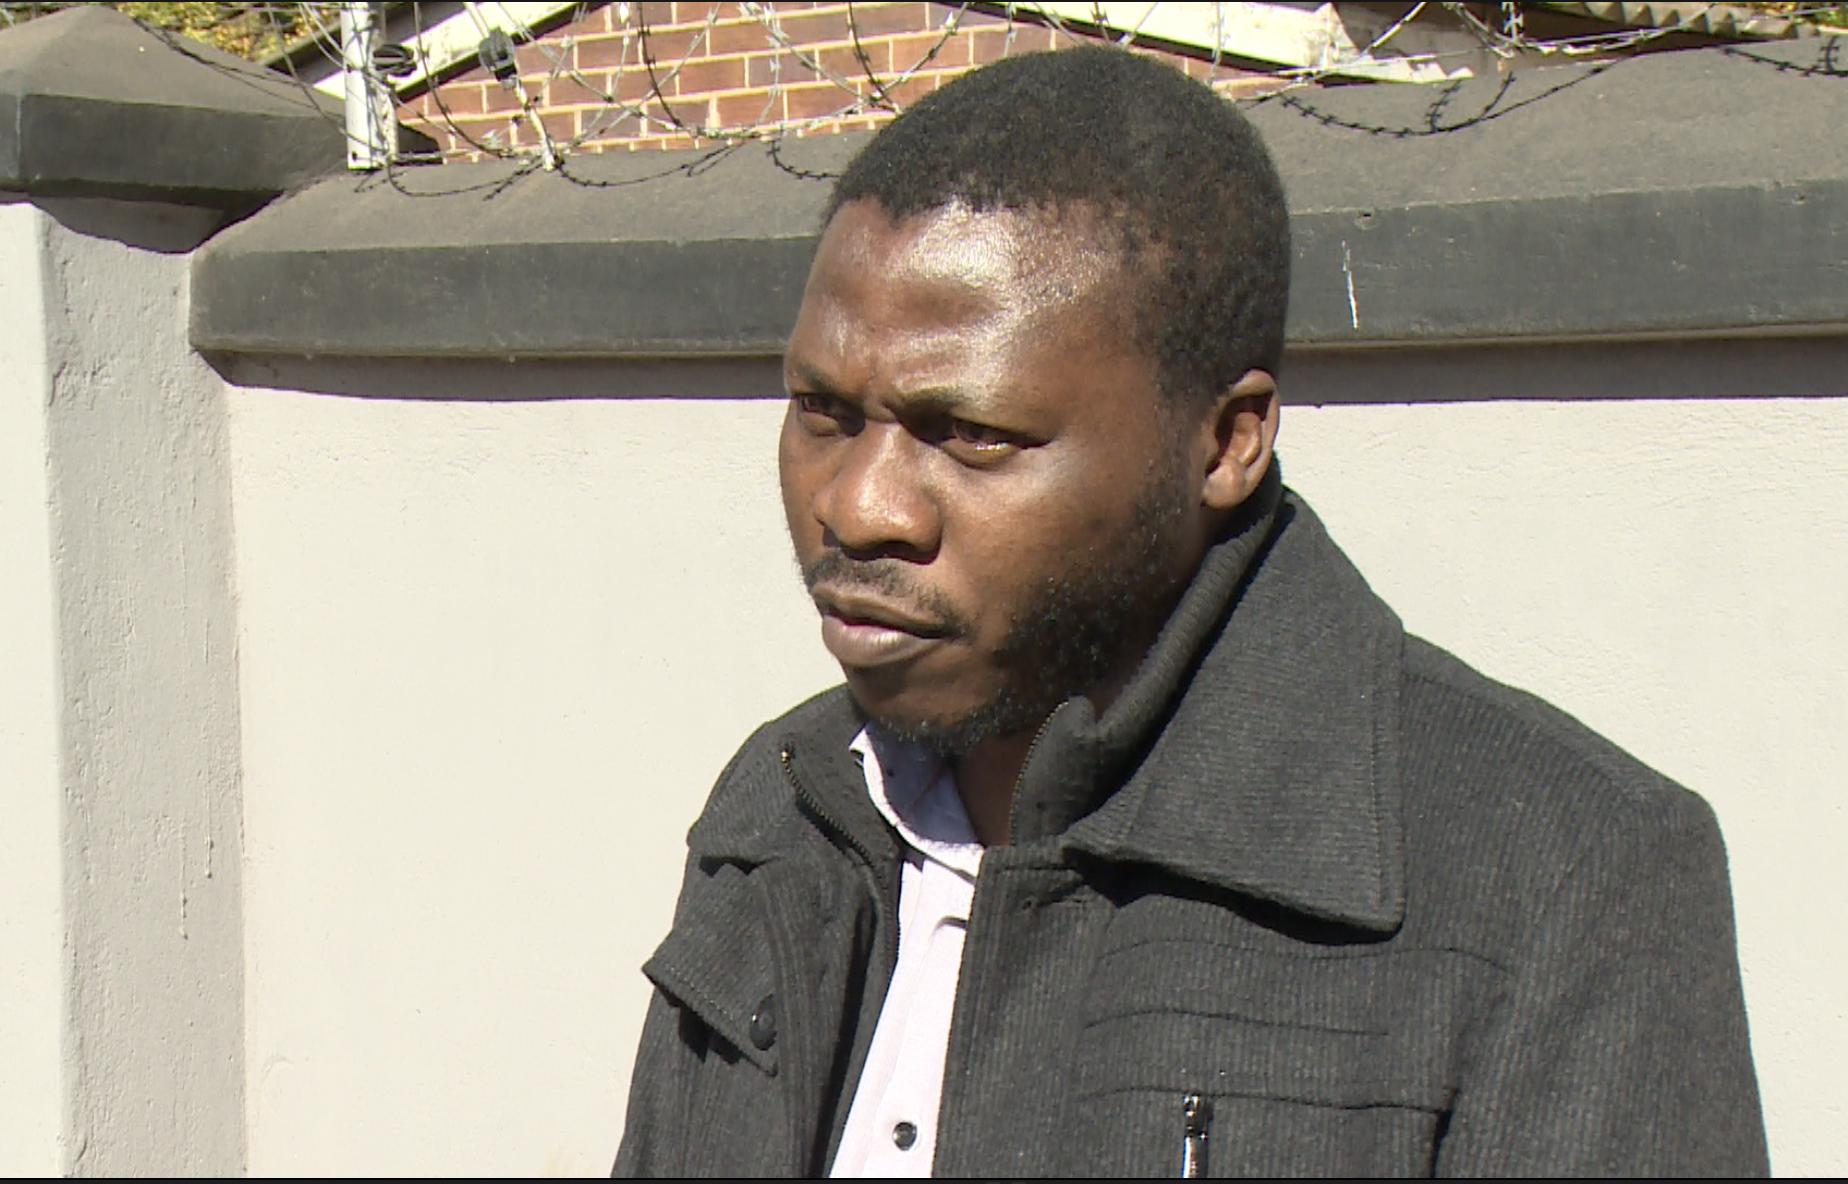 Kumbirai Mafunda from the Zimbabwe Lawyers for Human Rights says is hopeful that the high court will release the activists on bail, June 3, 2019.